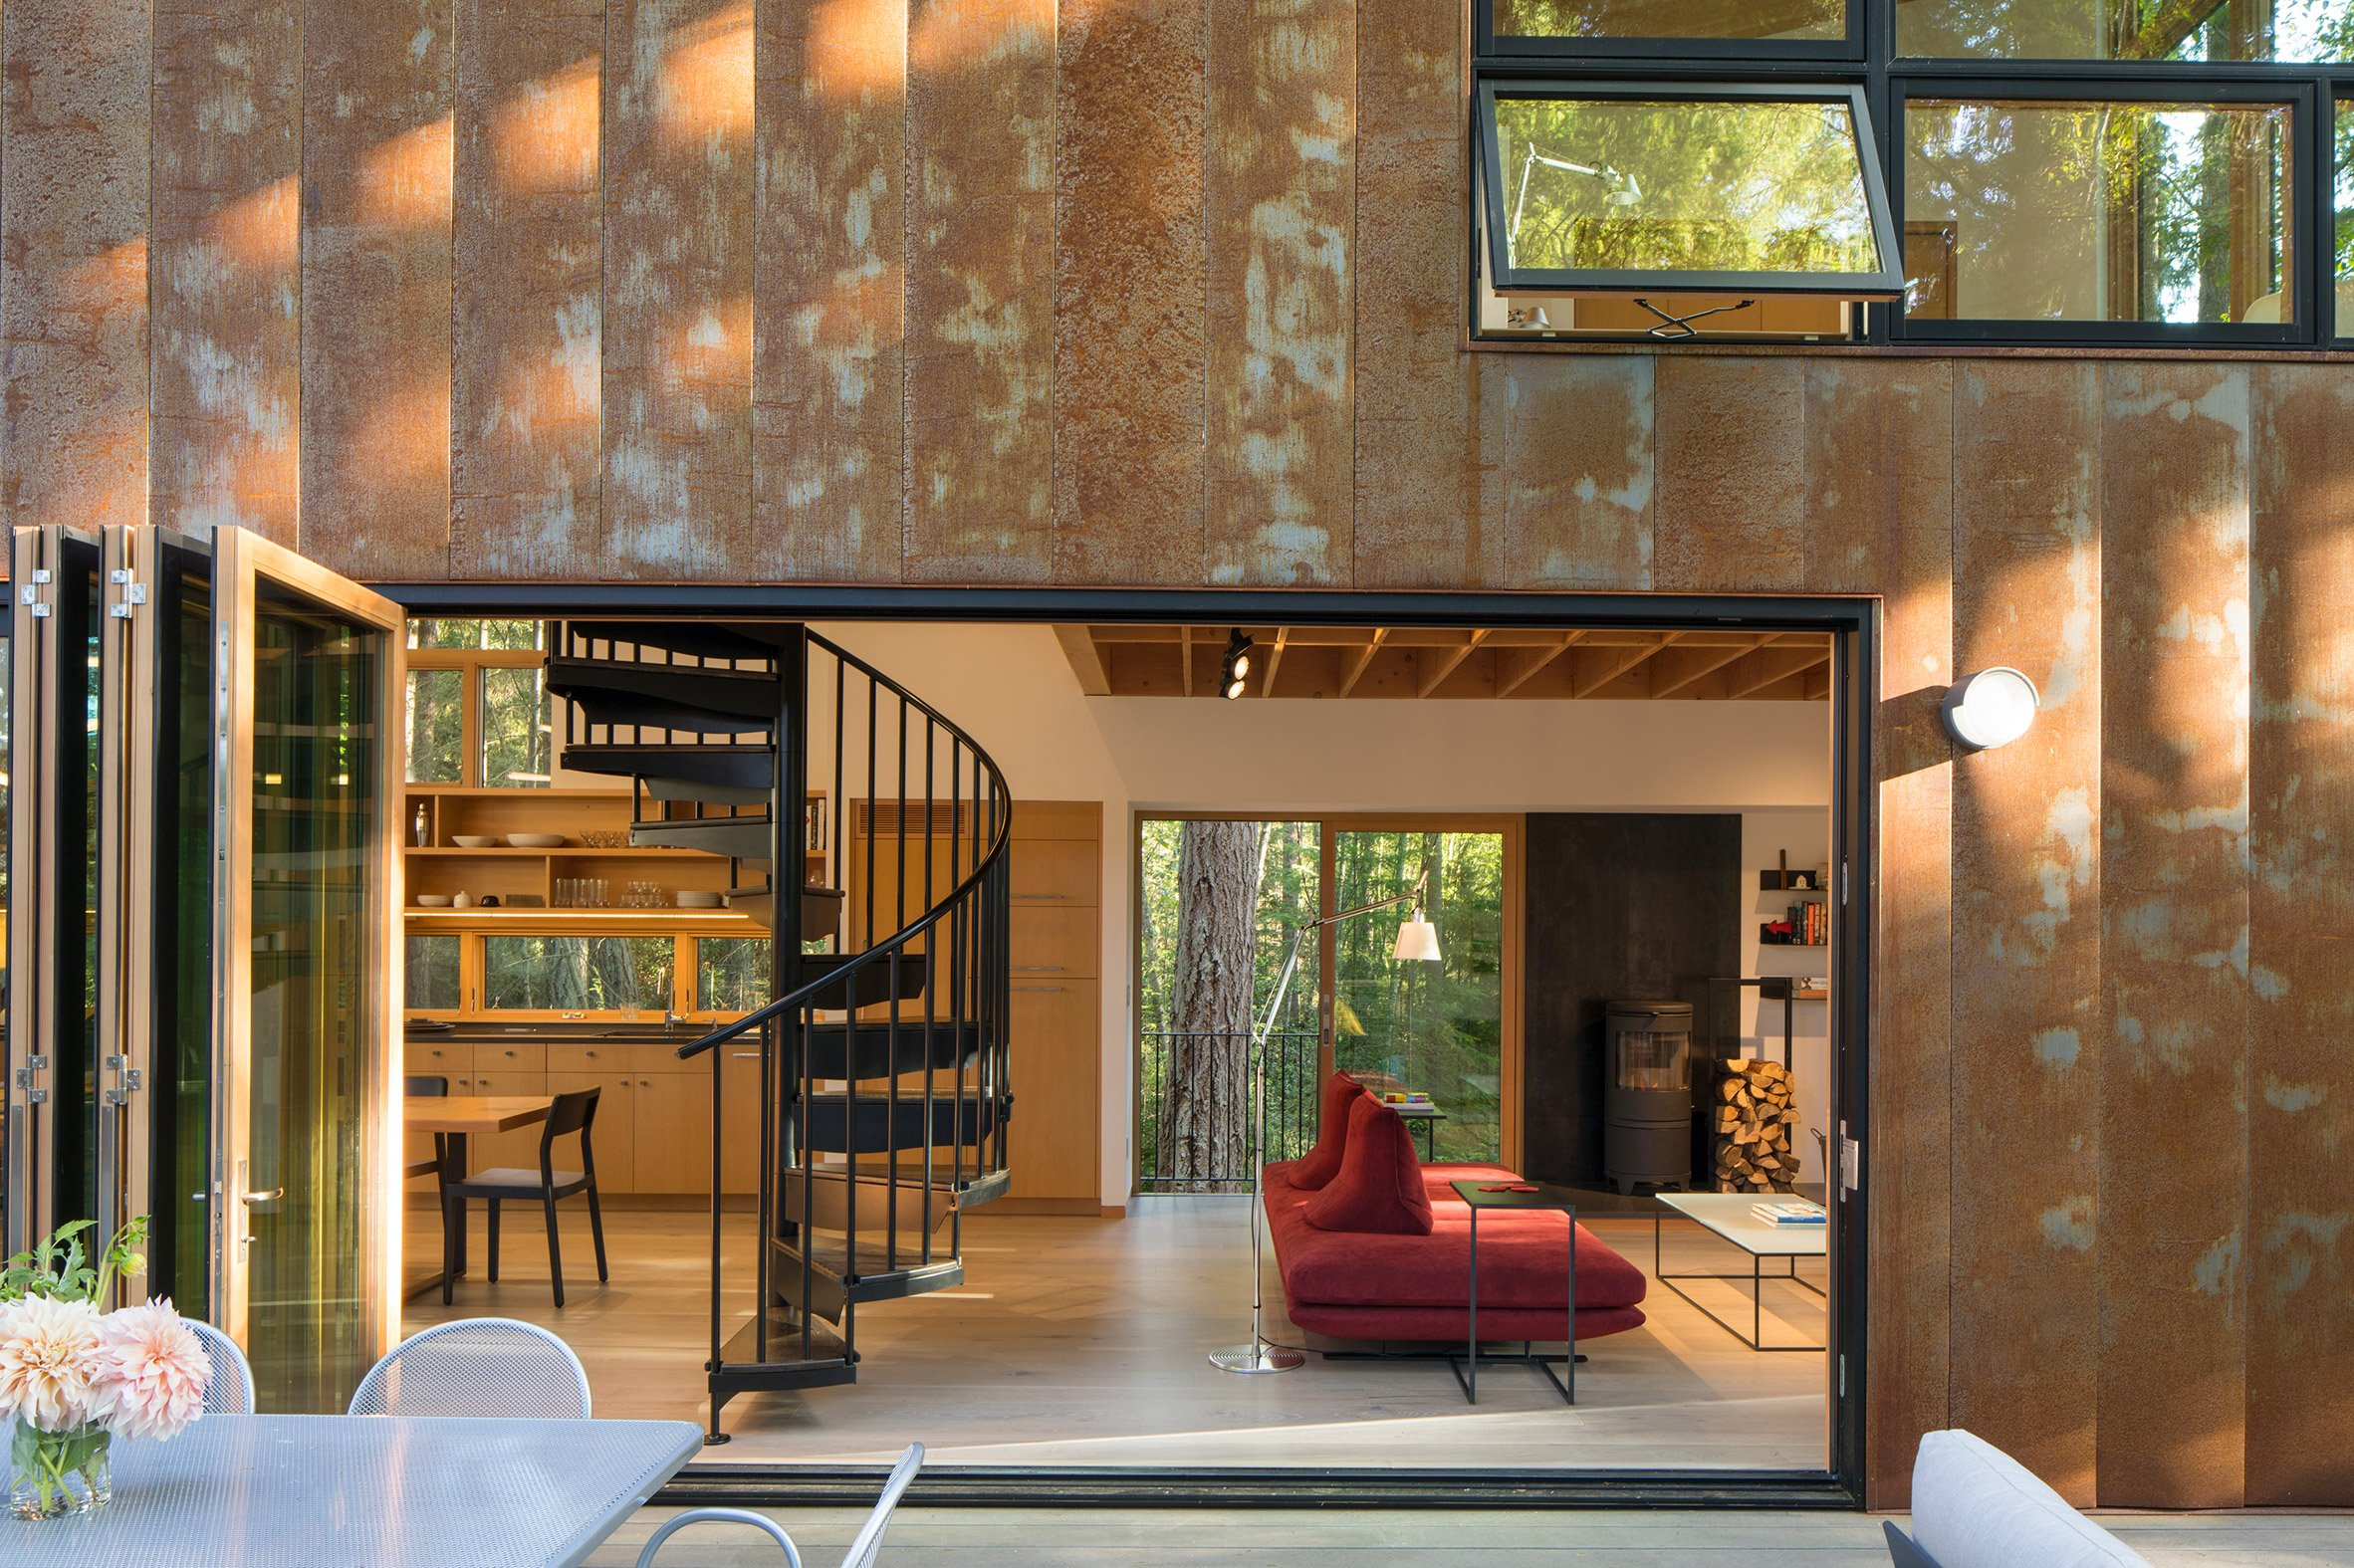 The Corten-steel house is nestled within a forest